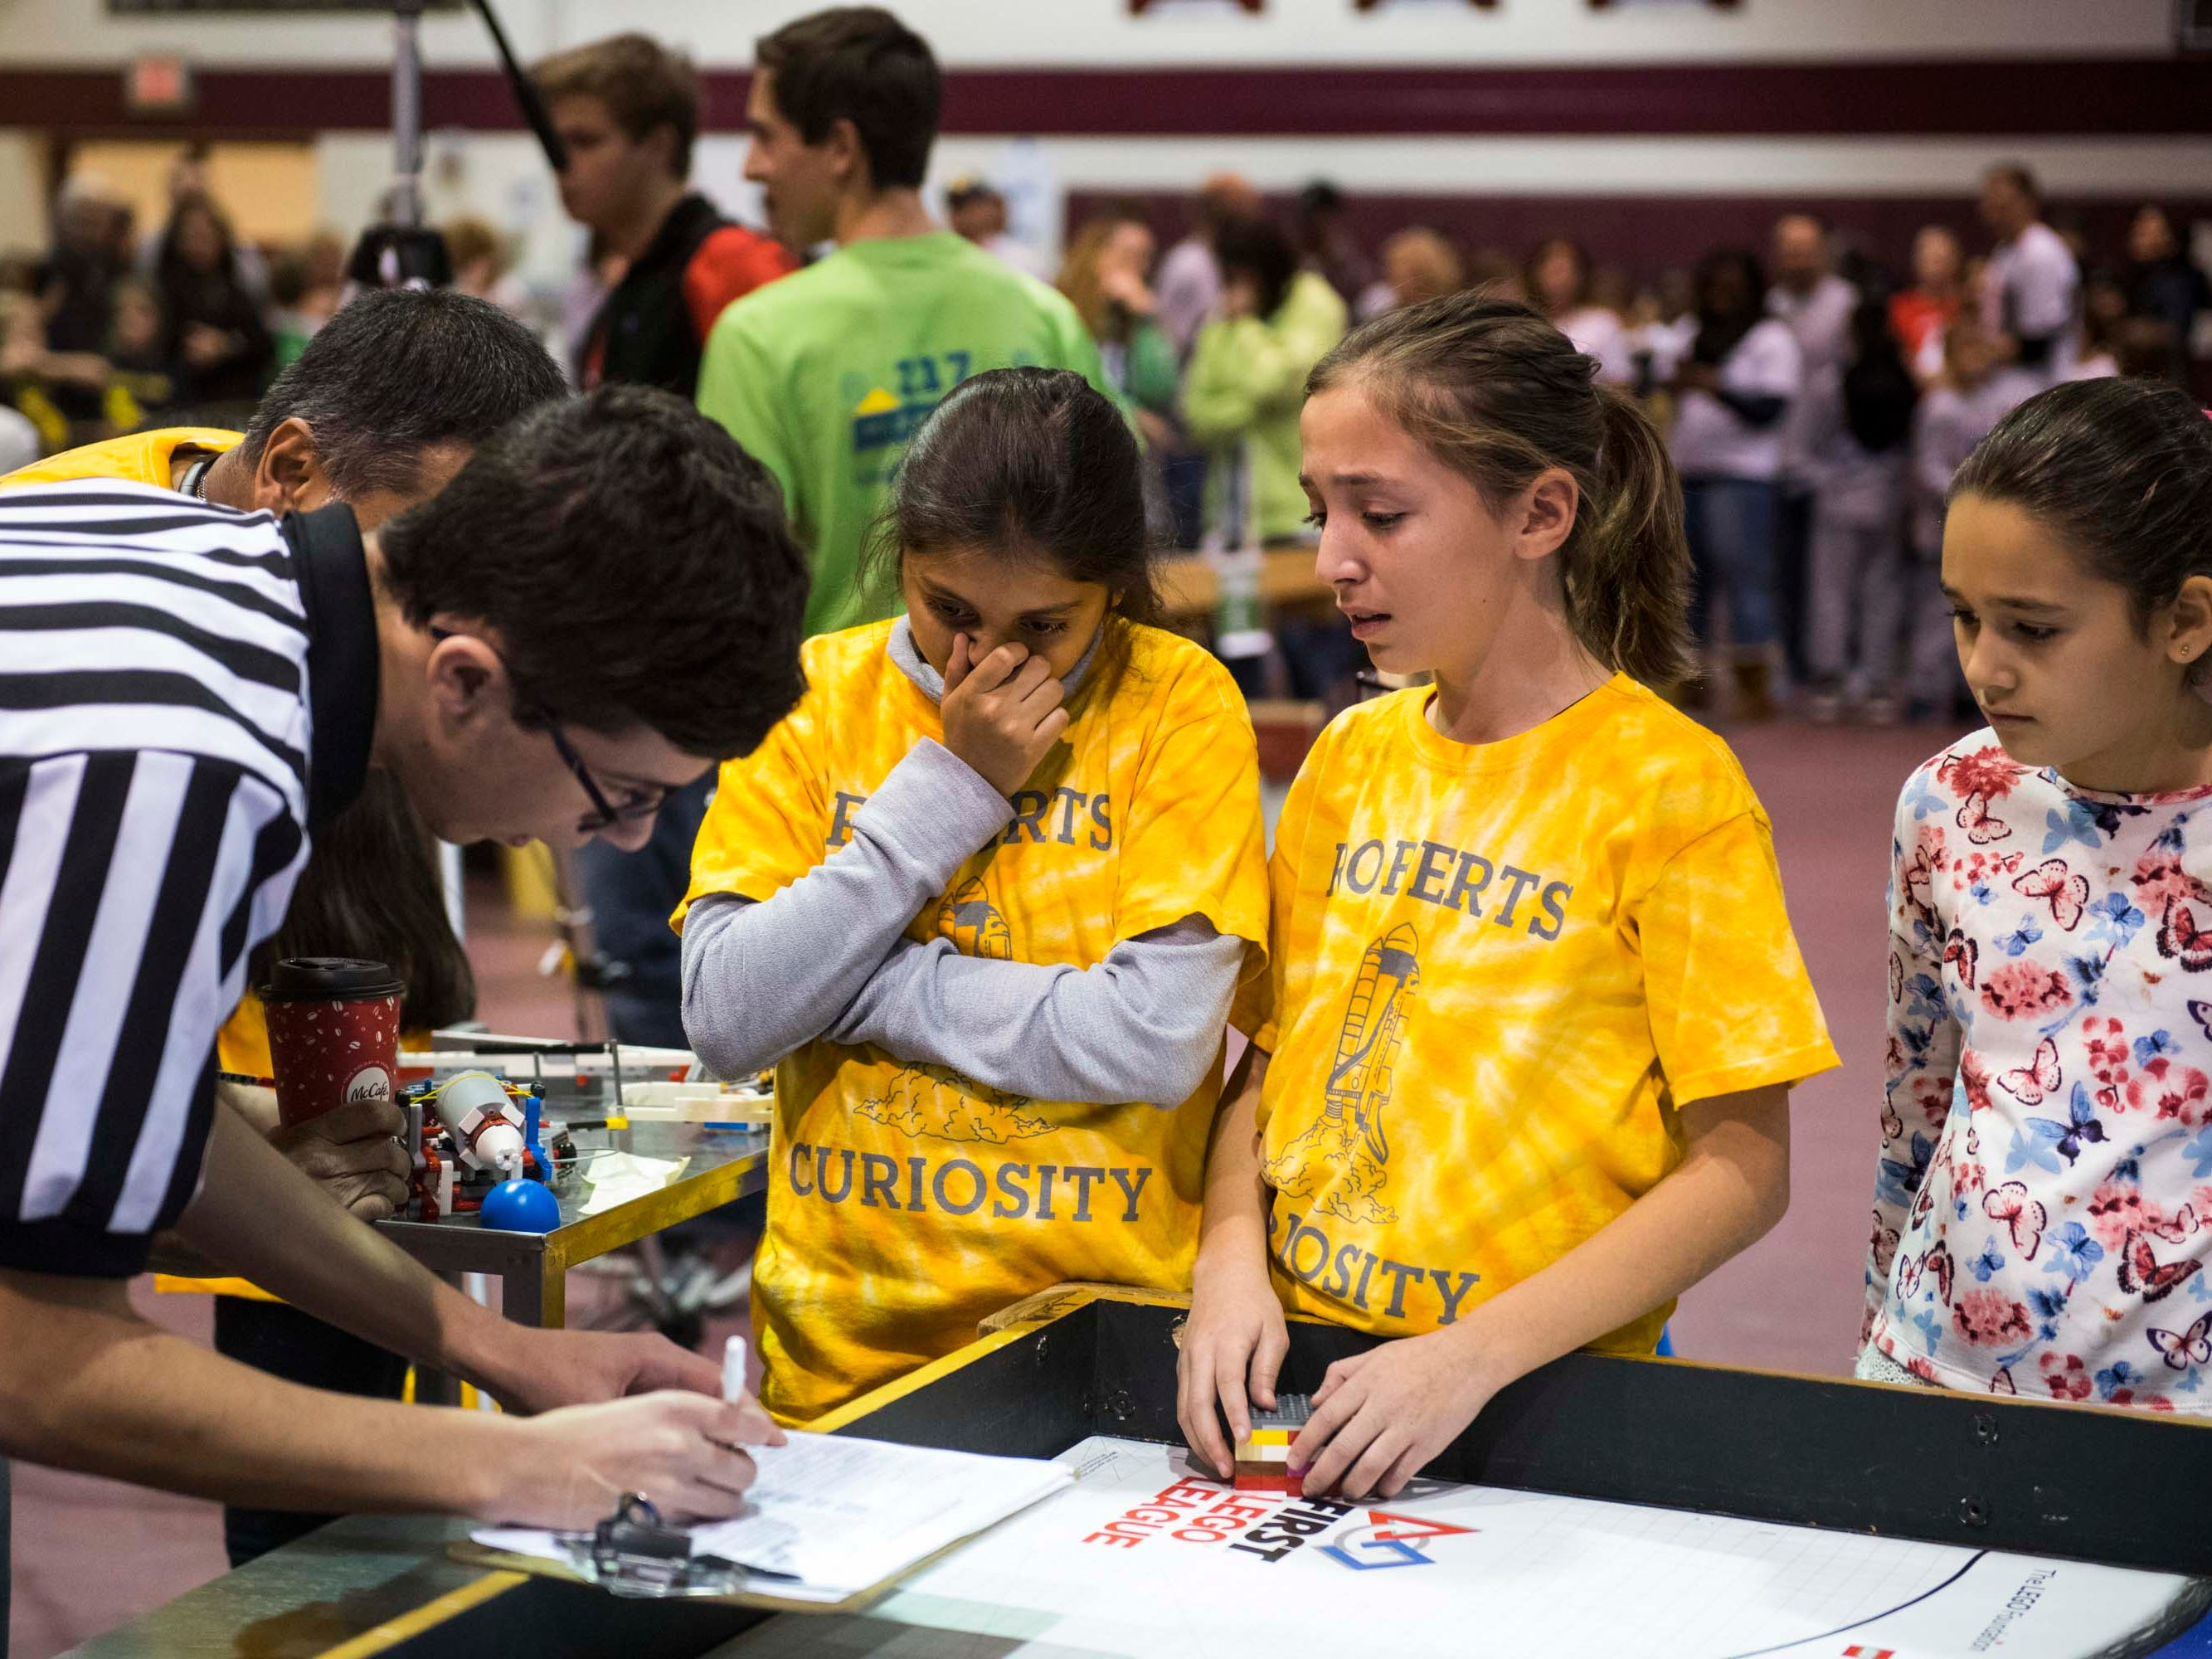 Aashna Moradia, 11, left, and Mikayla Pietraszkiewicz, 12, of the Roberts Curiosity robotics team wait to get their score after competing with their Lego robot.